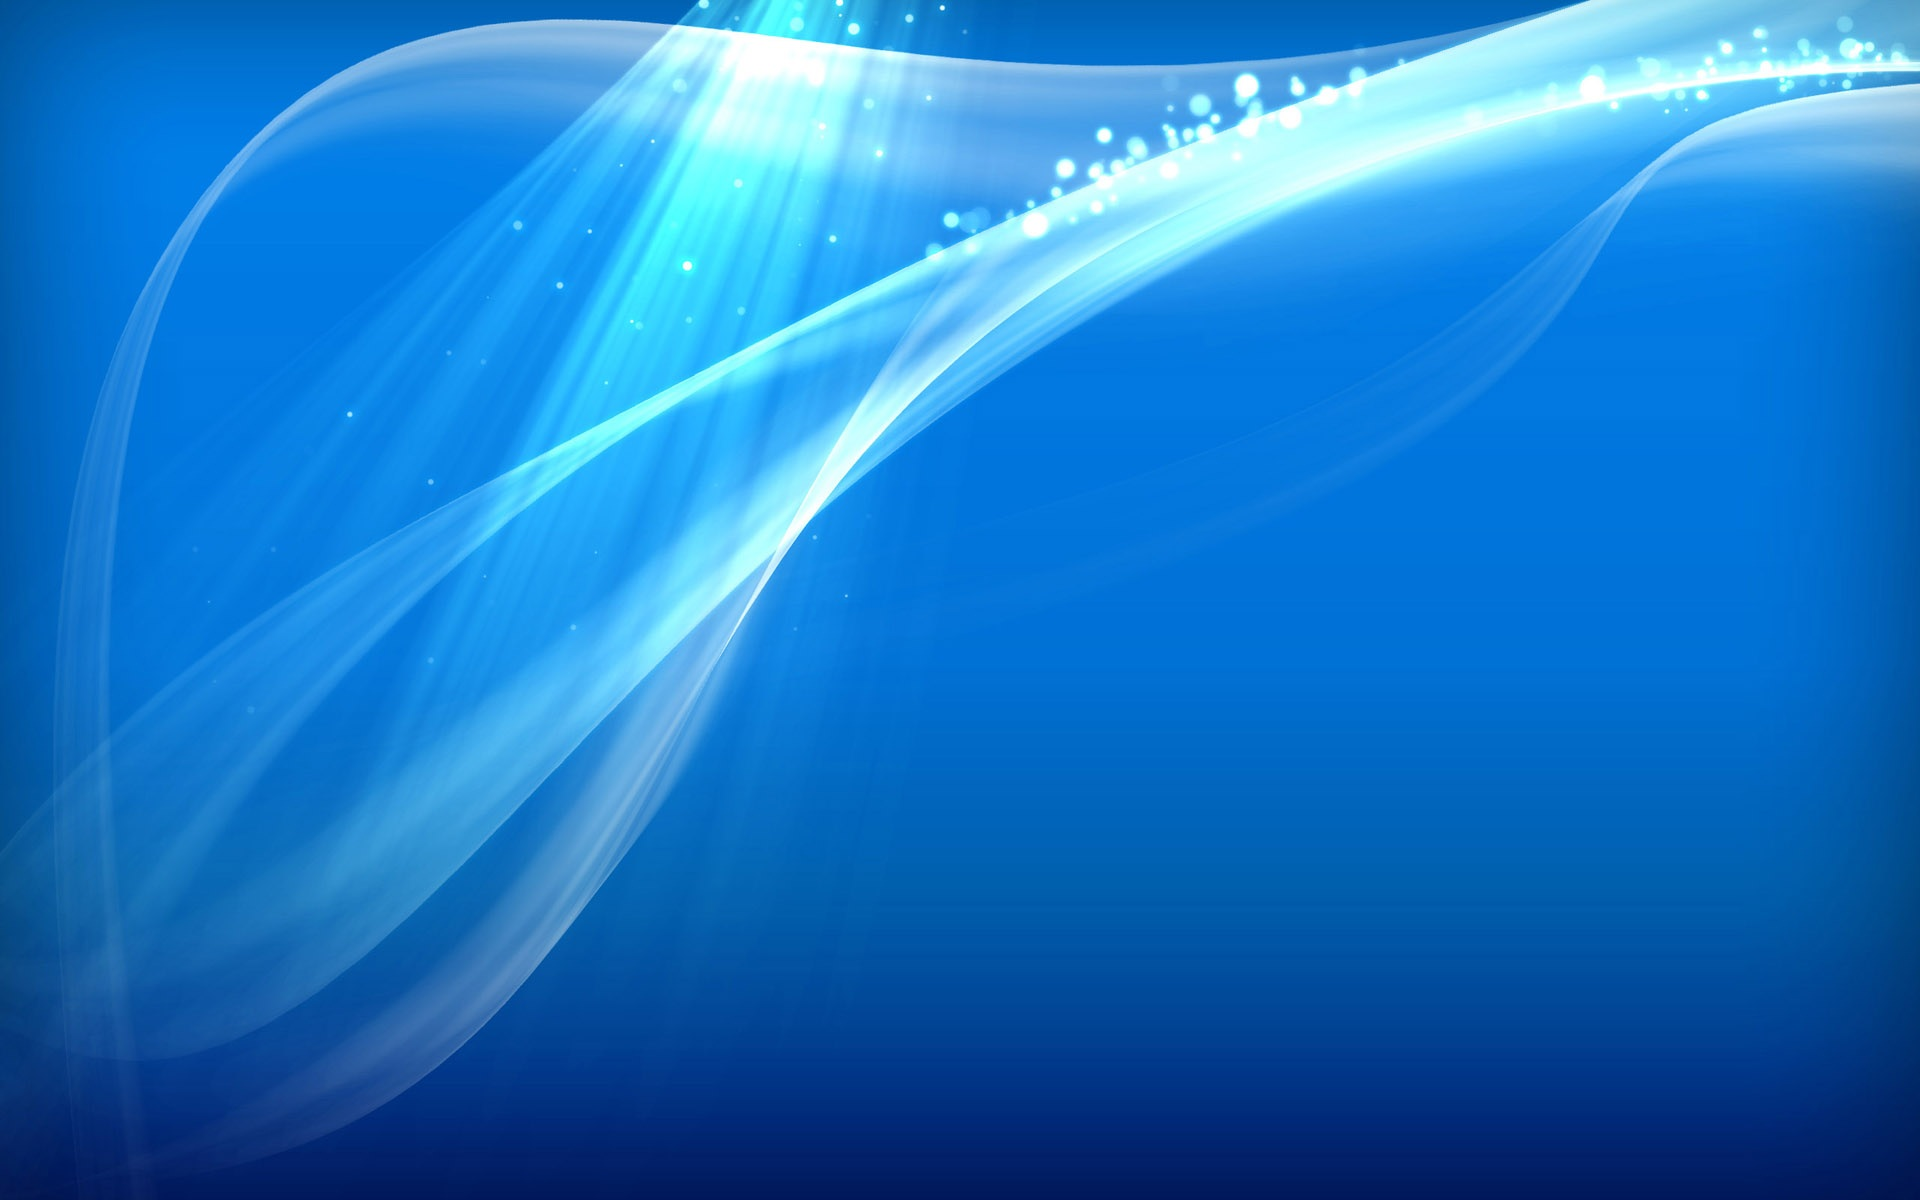 Blue Background Abstract 163.6 Kb